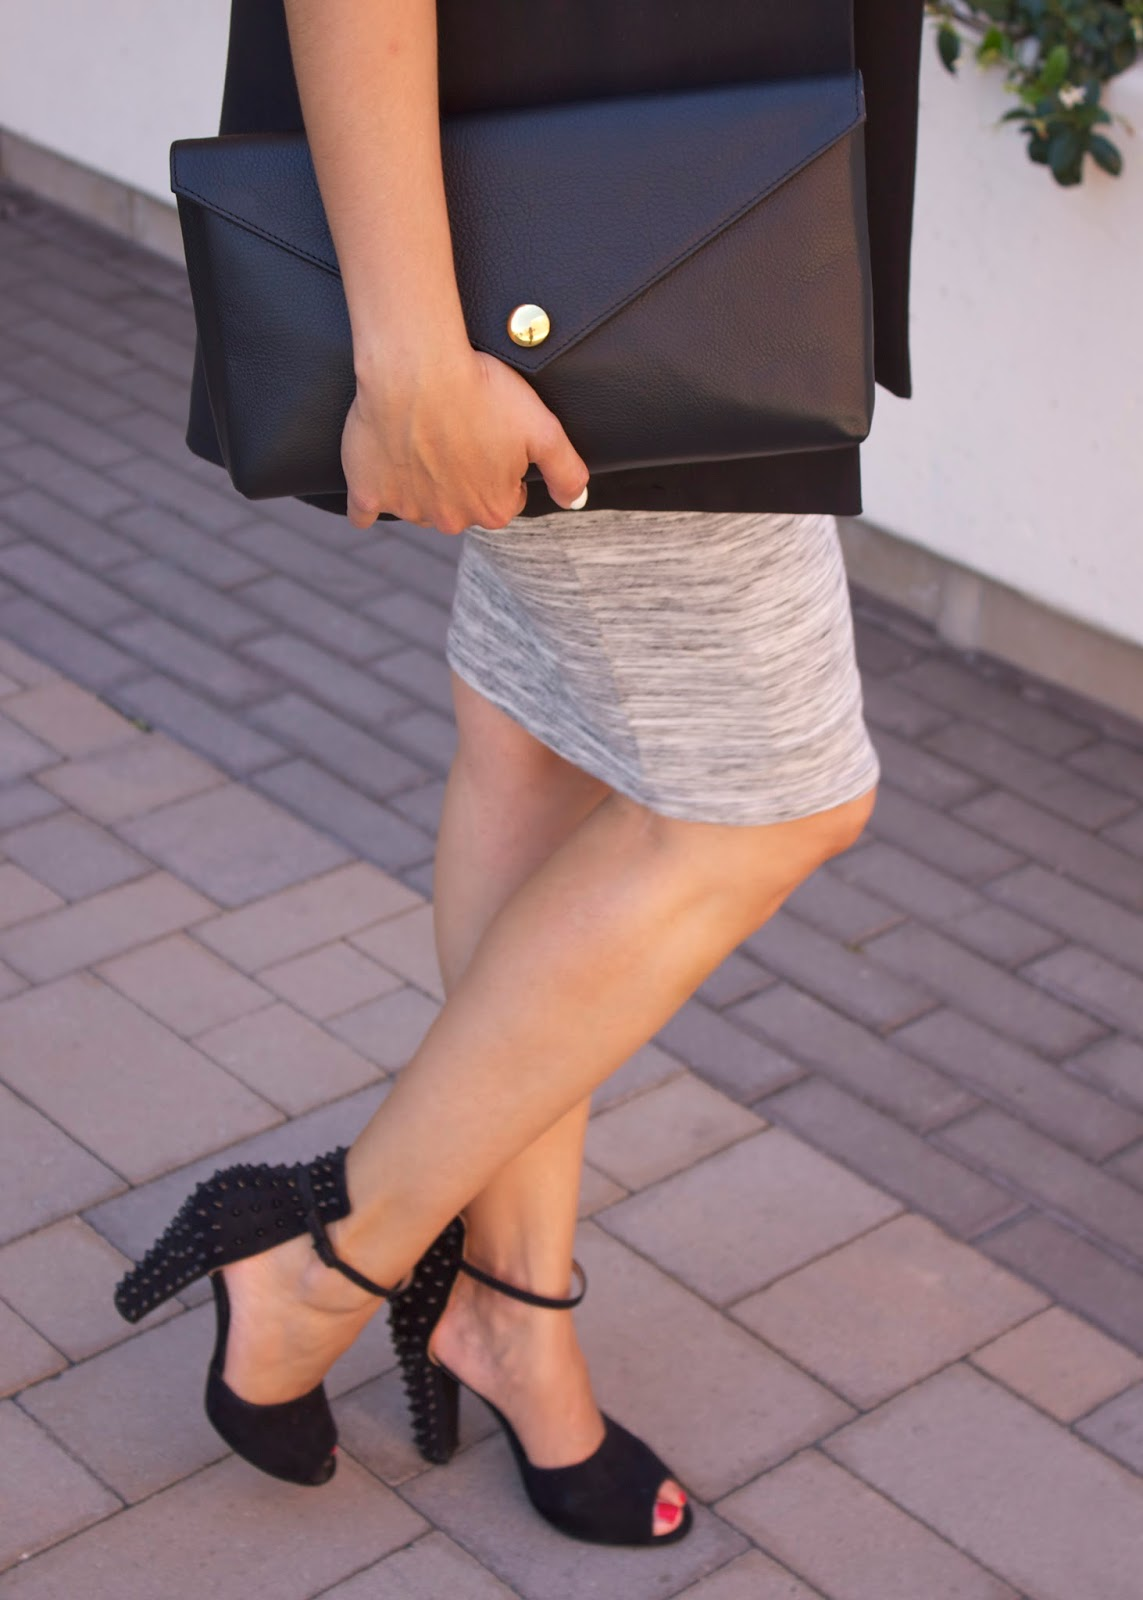 chic accessories, linell ellis black clutch, zara black heels, black ankle strap shoes from Zara, edgy shoes